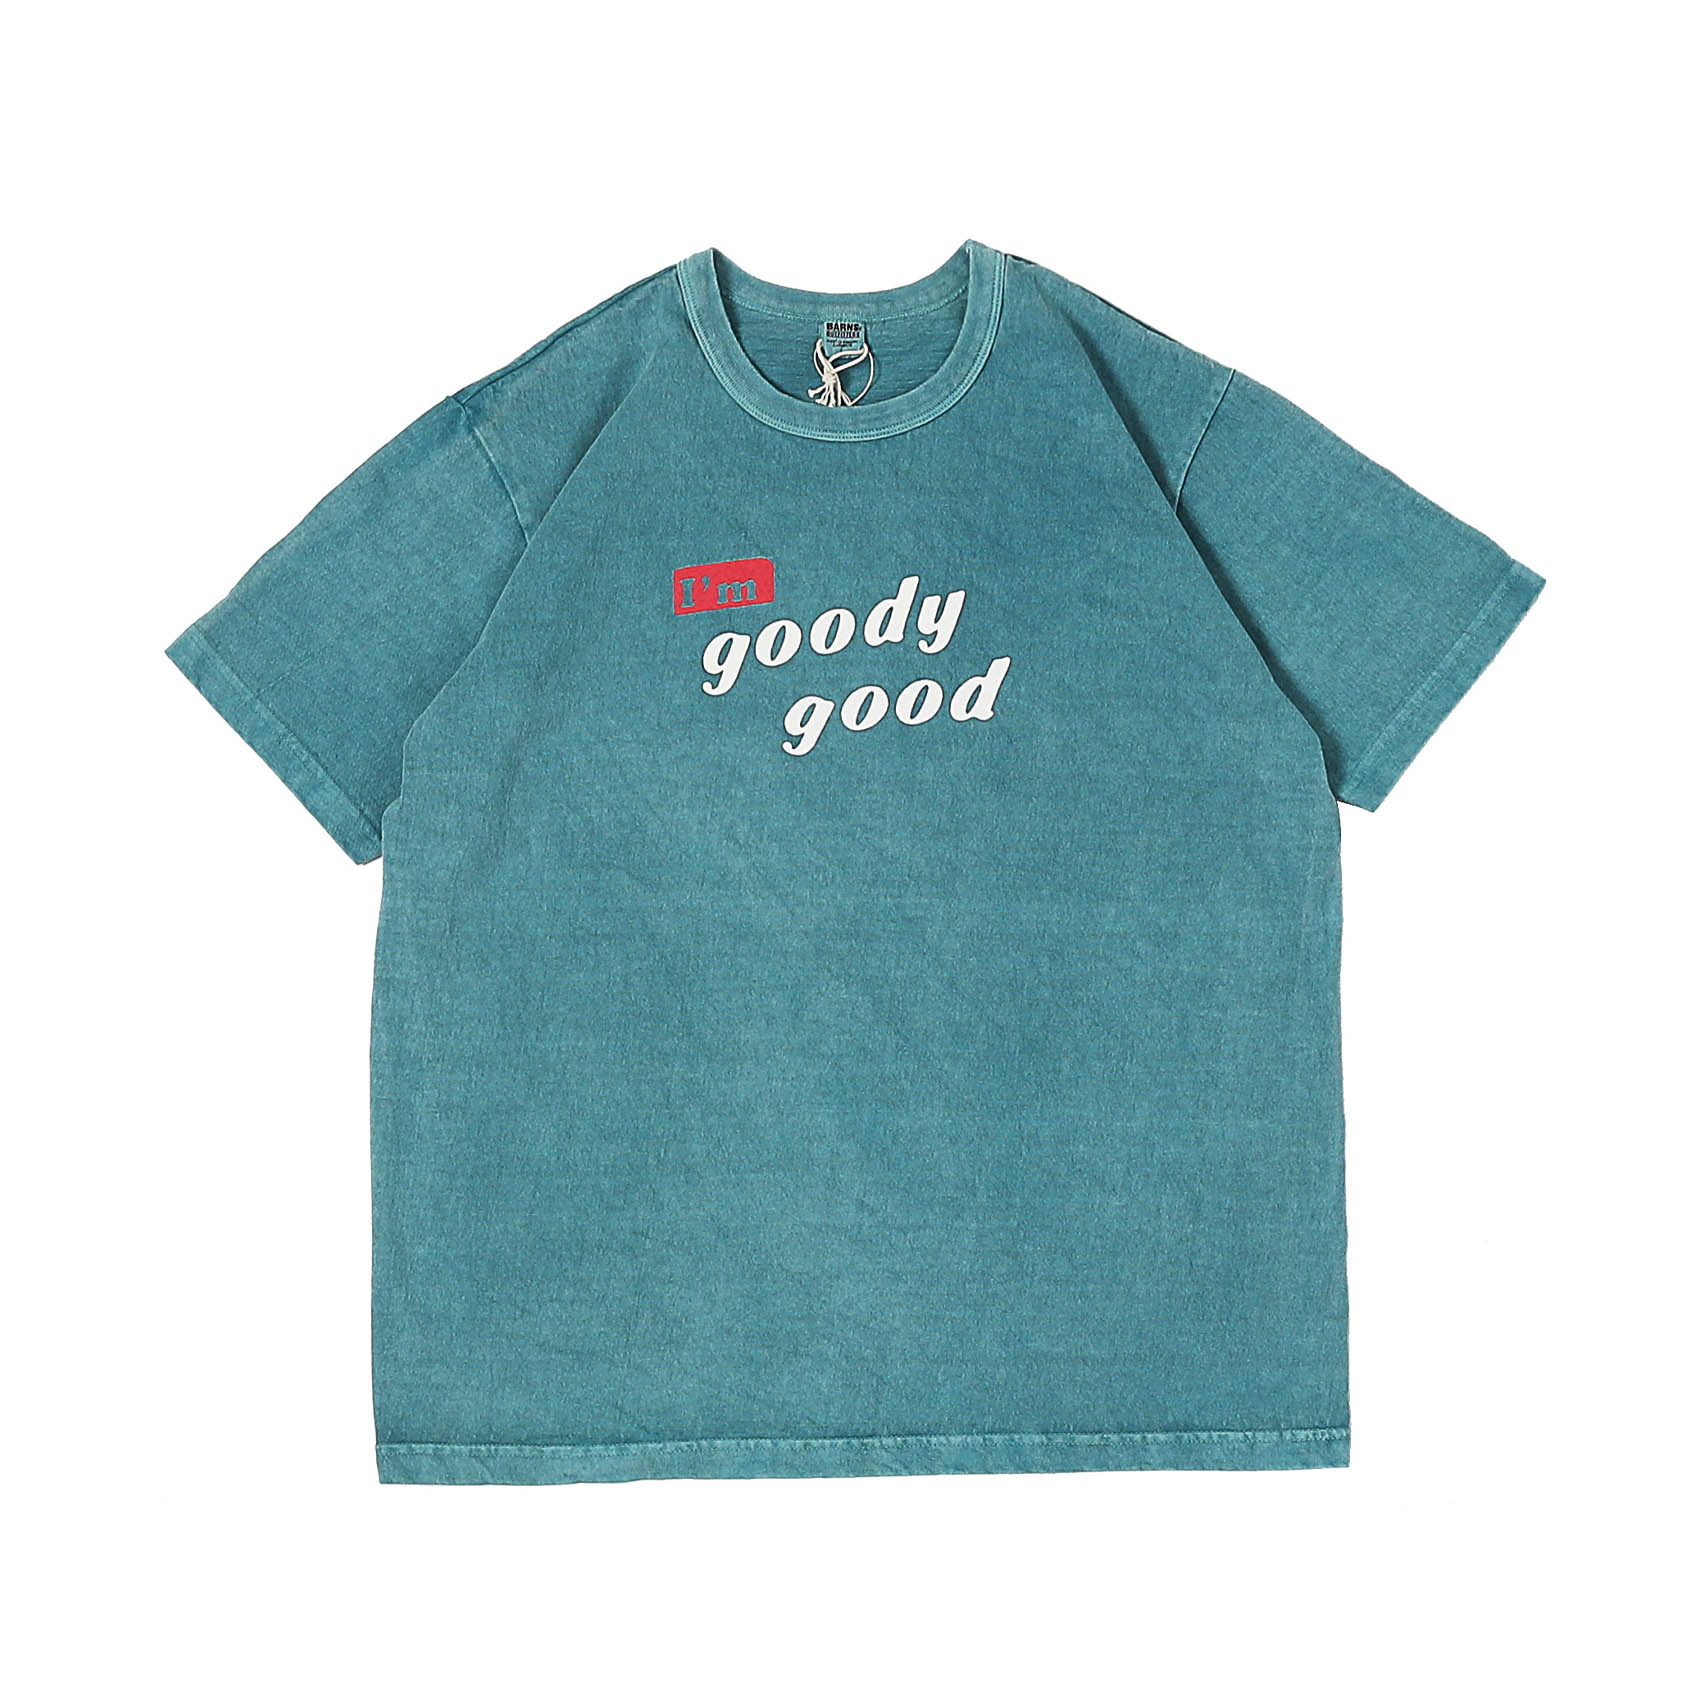 S/S PRINTED TEE - GOODY GOOD MINT